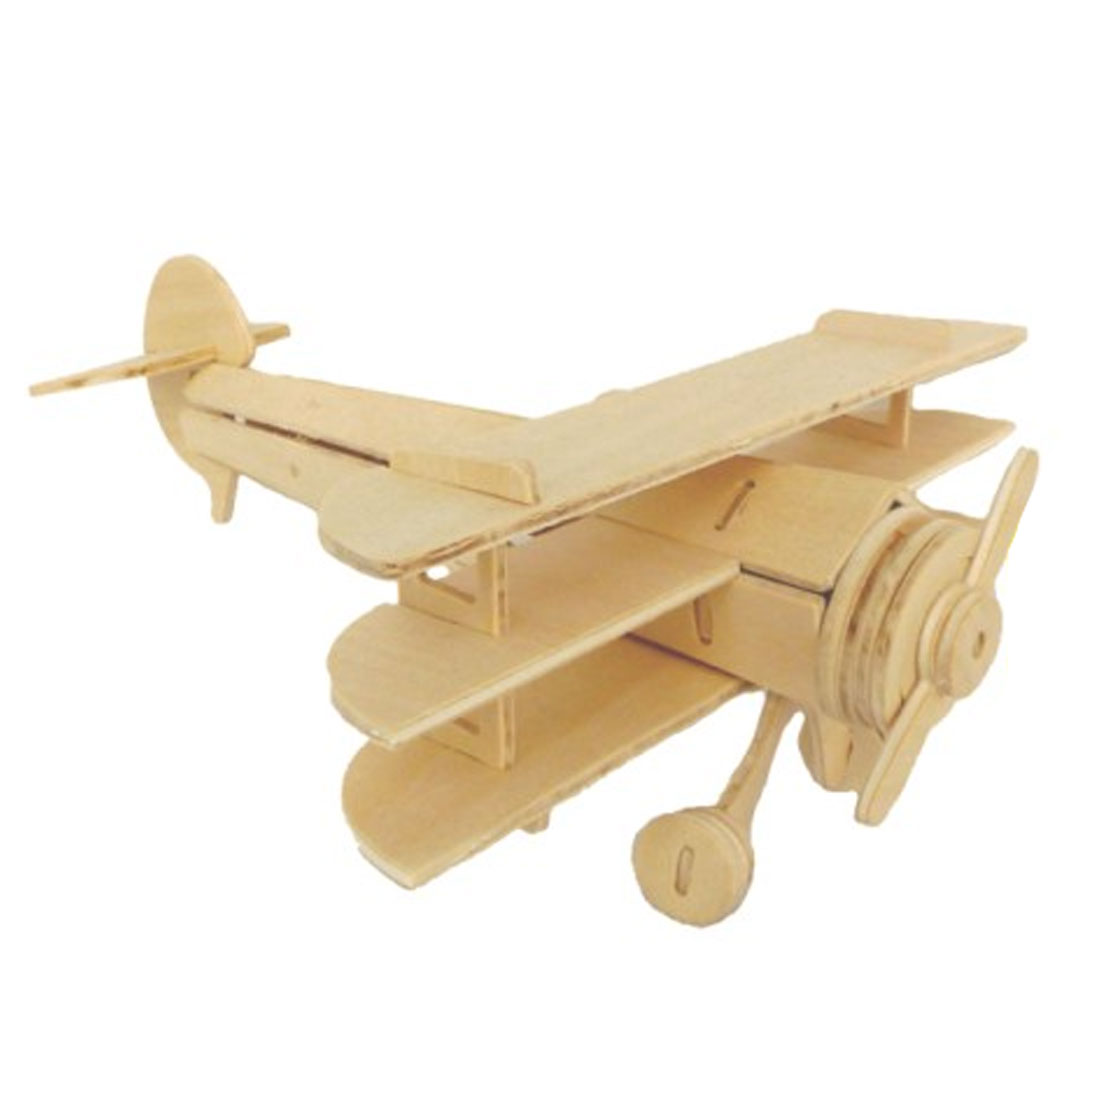 3D Wood Craft DIY Sopwith Triplane Model Wooden Intelligence Toy Gift